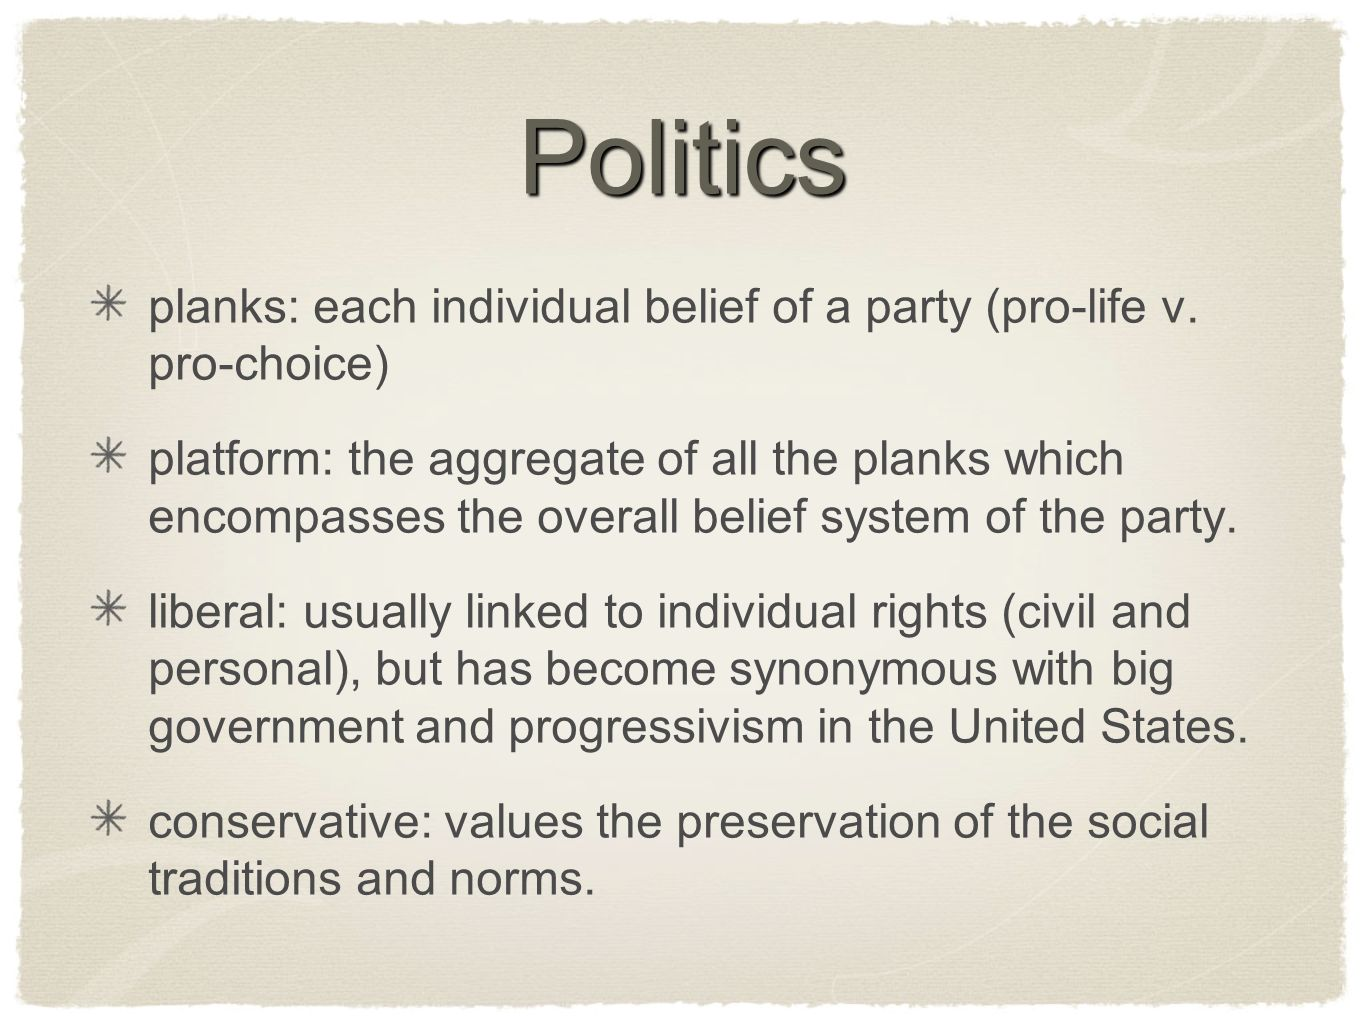 Politics planks: each individual belief of a party (pro-life v. pro-choice)